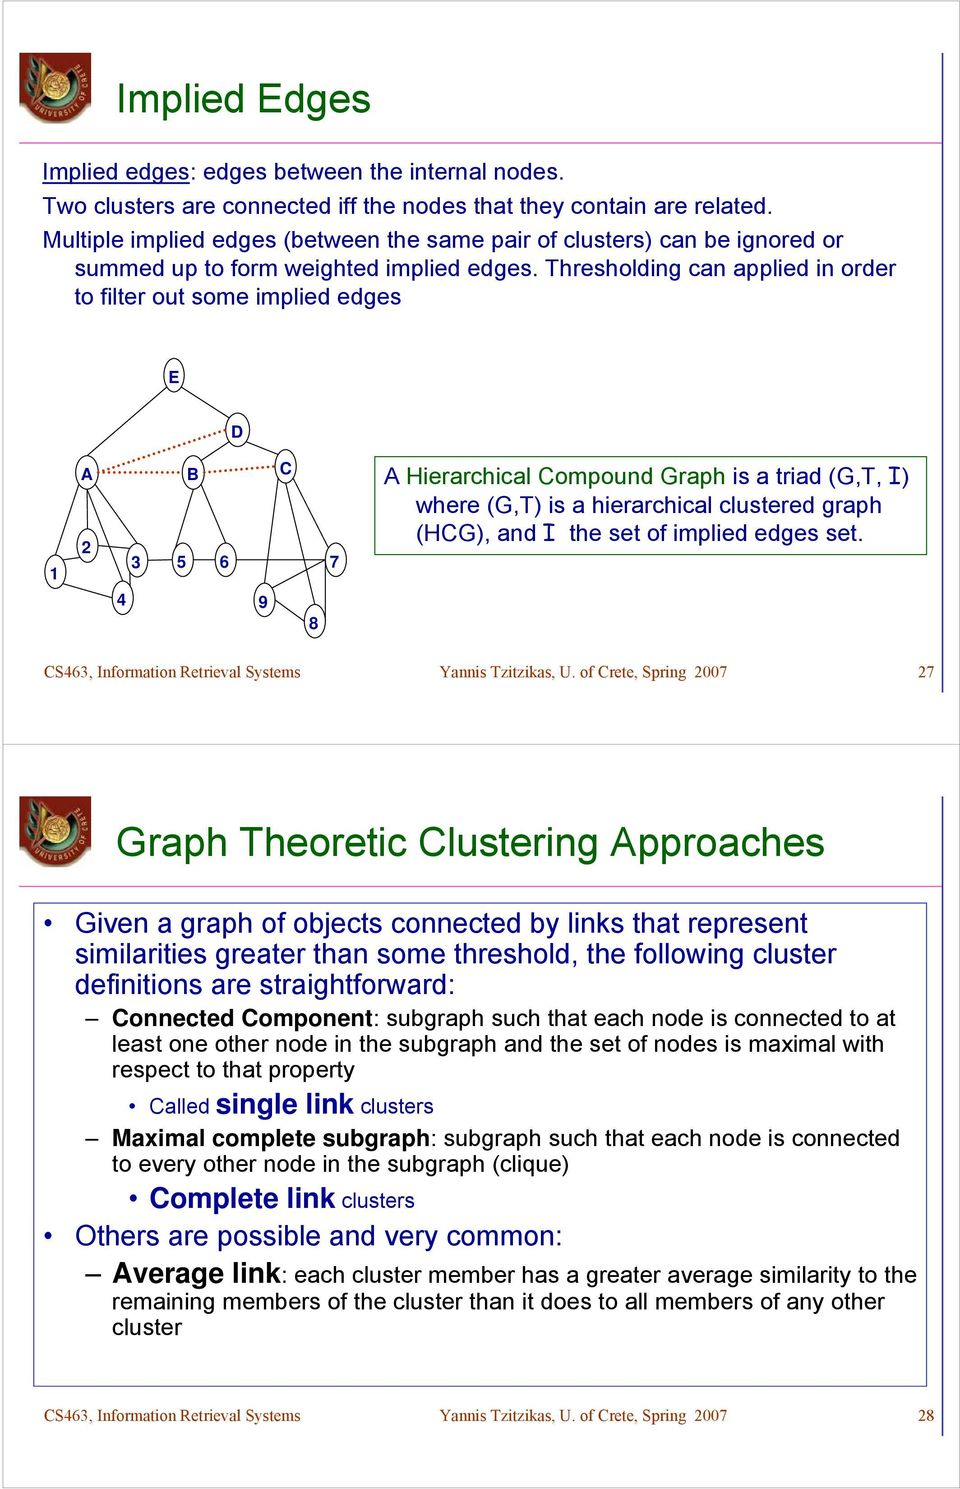 Thresholding can applied in order to filter out some implied edges E D A B C 3 5 6 7 4 9 8 A Hierarchical Compound Graph is a triad (G,T, I) where (G,T) is a hierarchical clustered graph (HCG), and I